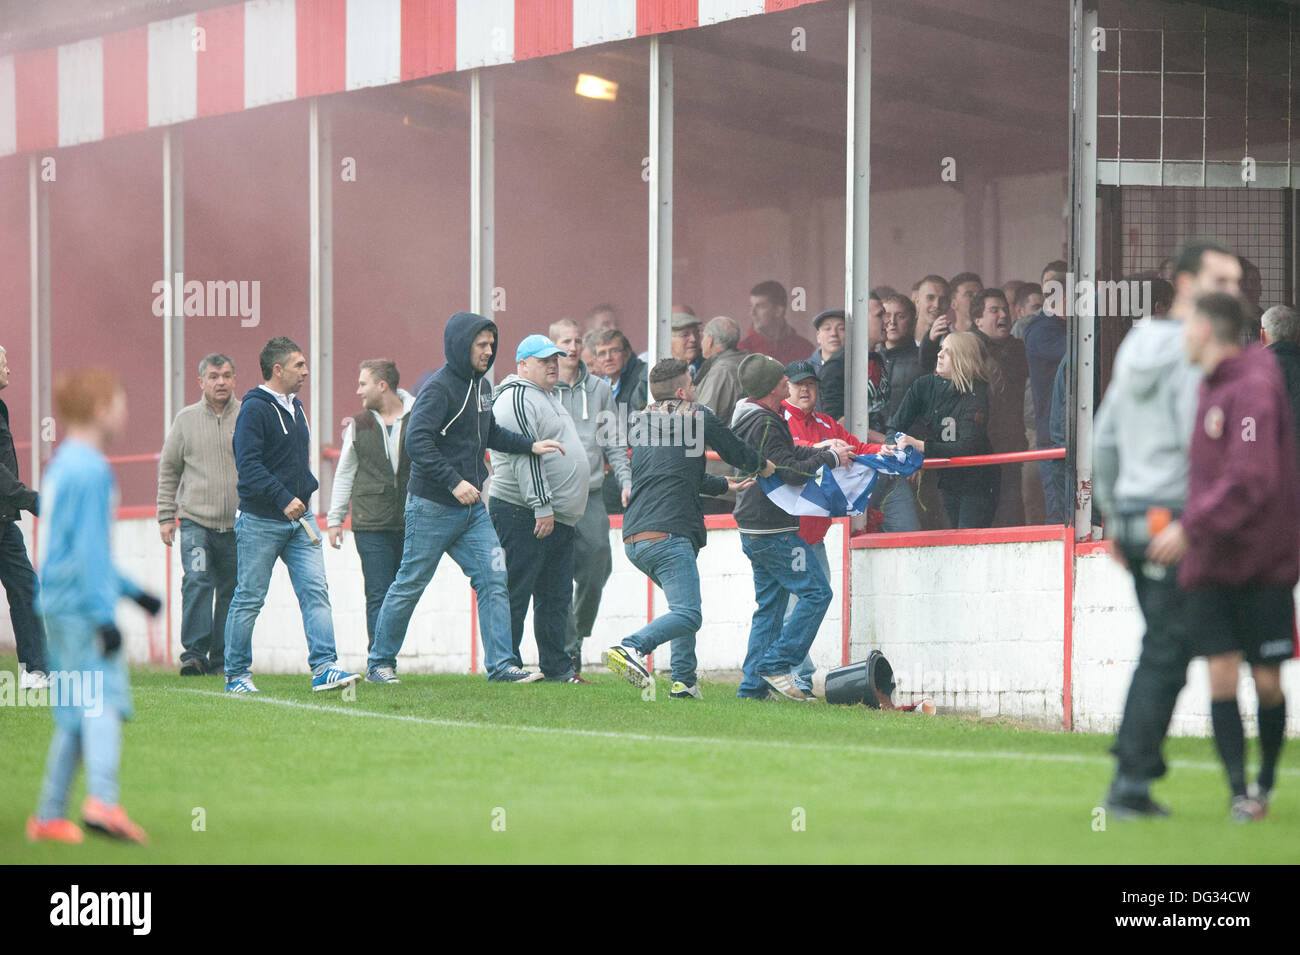 Atherstone, Warwickshire, UK. 12th October, 2013. A group of fans from the home end of the Sheepy Road ground walk around the perimeter of the pitch and scale the fences to attack the visiting supporters (Barrow AFC). A firework was also thrown towards to the terrace of the away following. A flag was stolen from the Barrow AFC fans and then set on fire using a lit firework. Atherstone chairman Rob Weale apologised for what occurred and vowed to pursue the perpetrators. - Stock Image